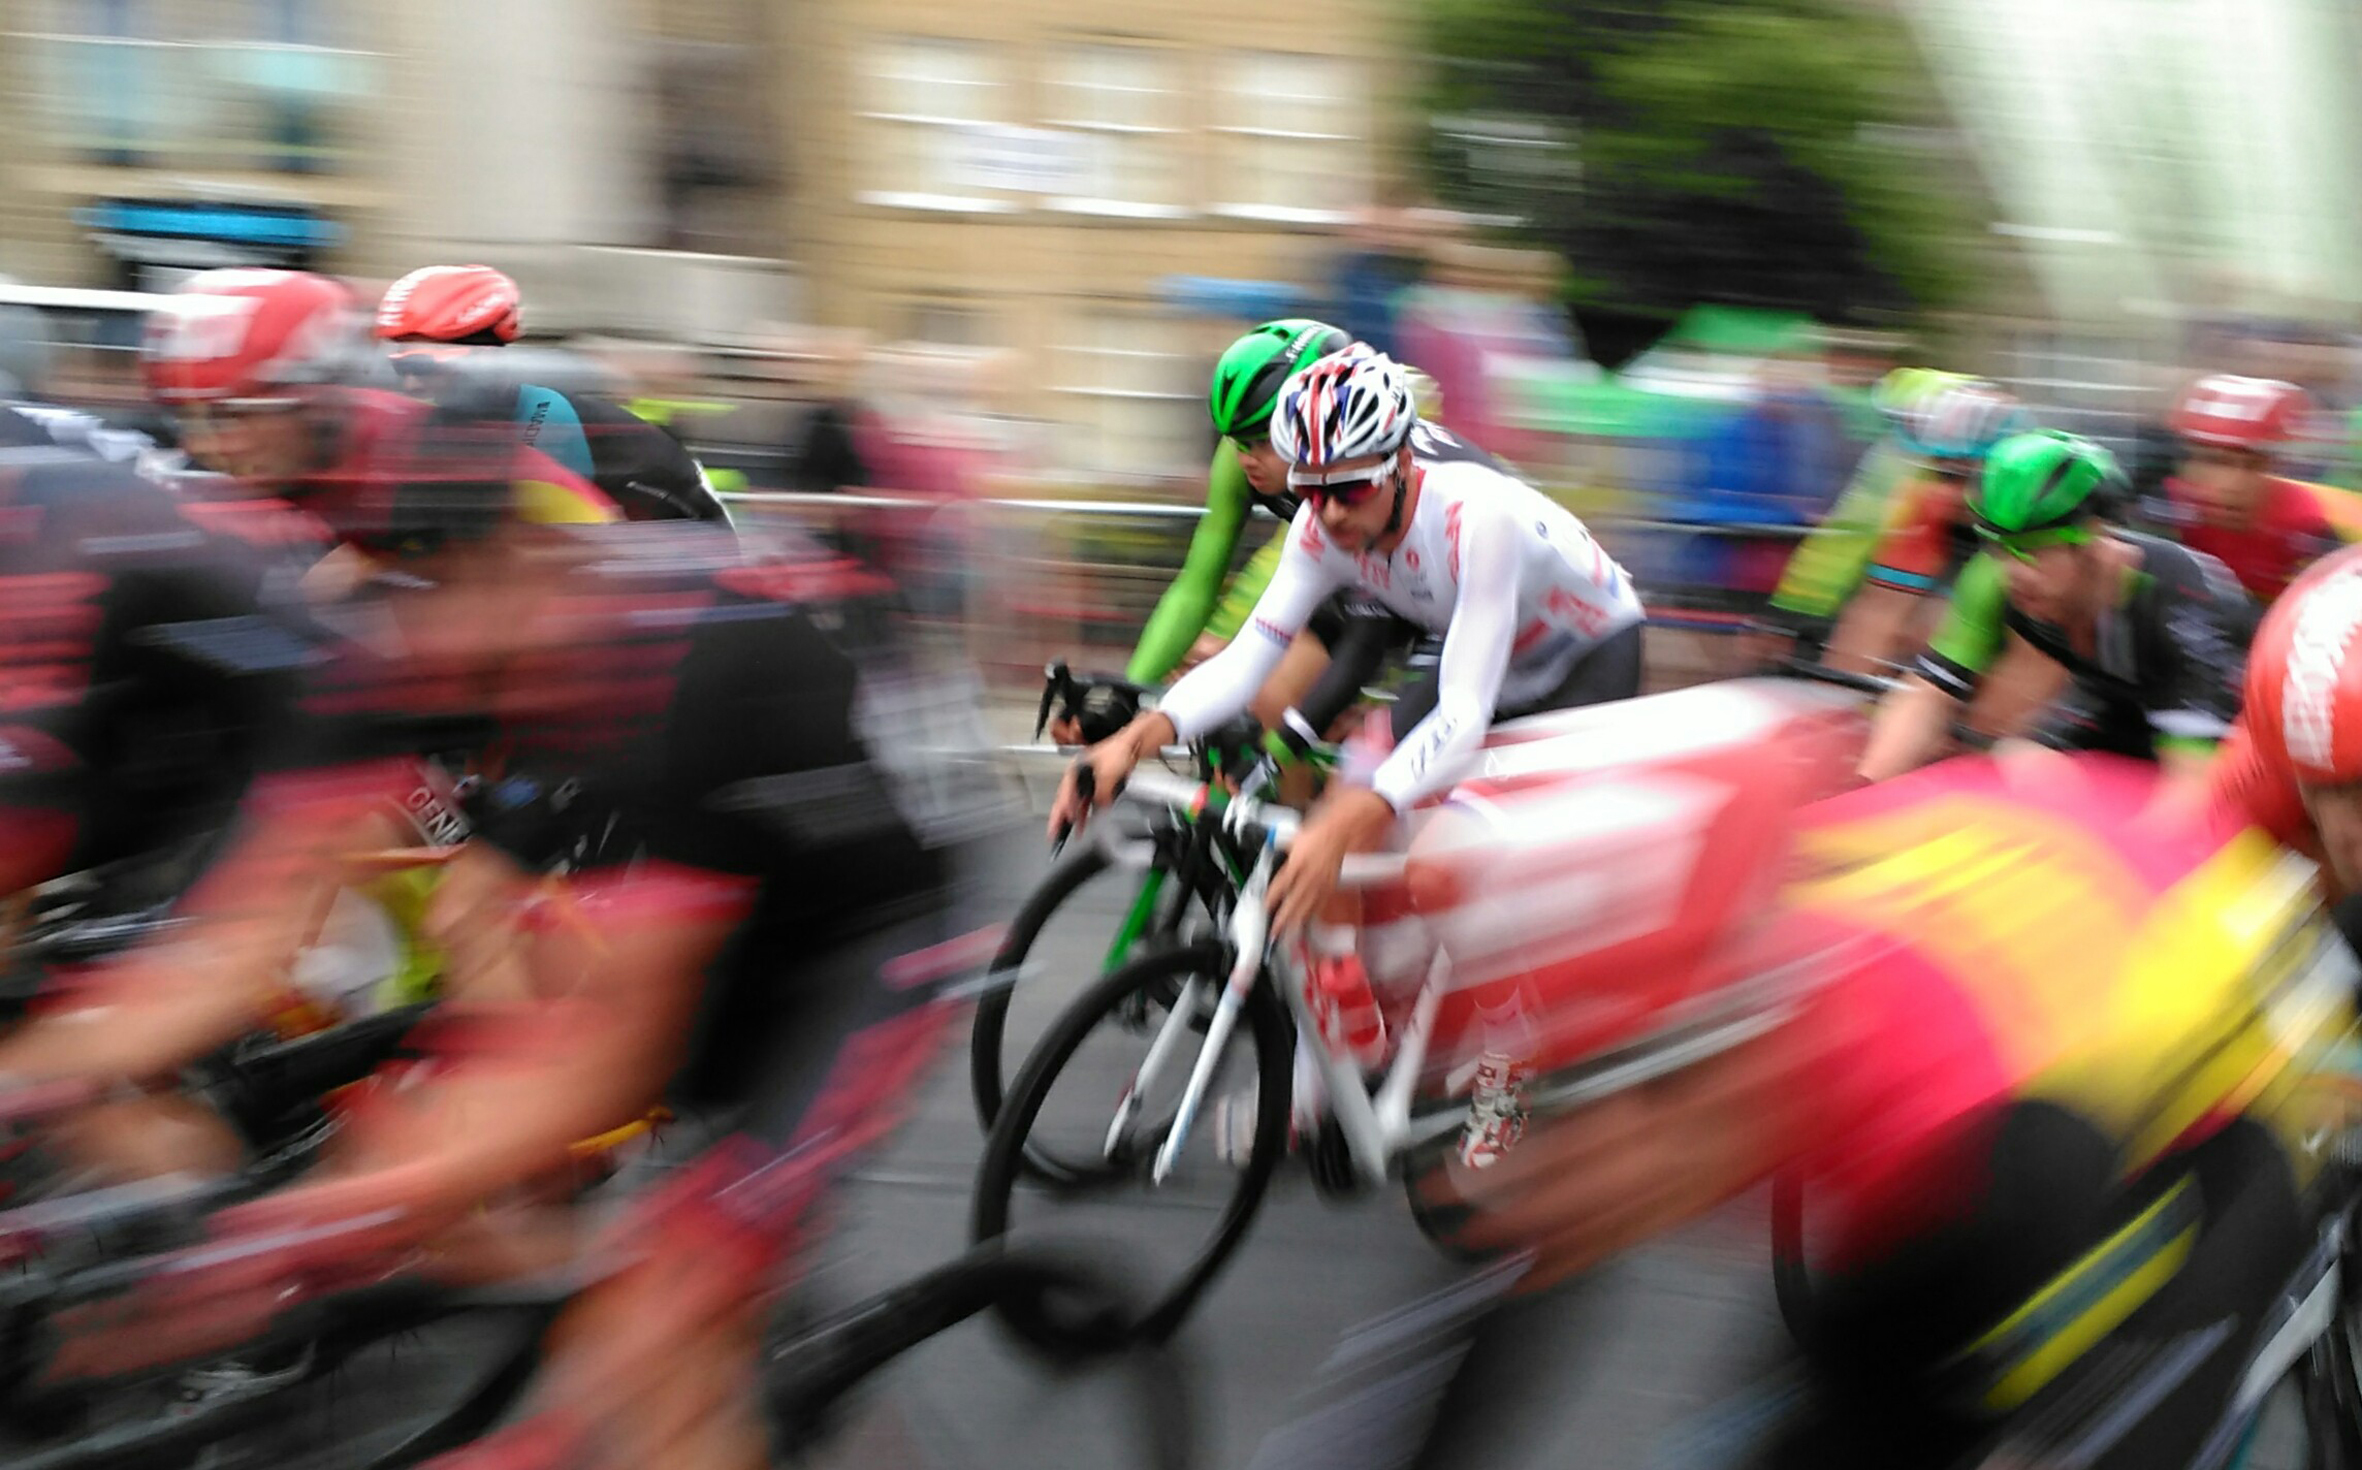 Chris Heald captures the action of the men's elite cycle race